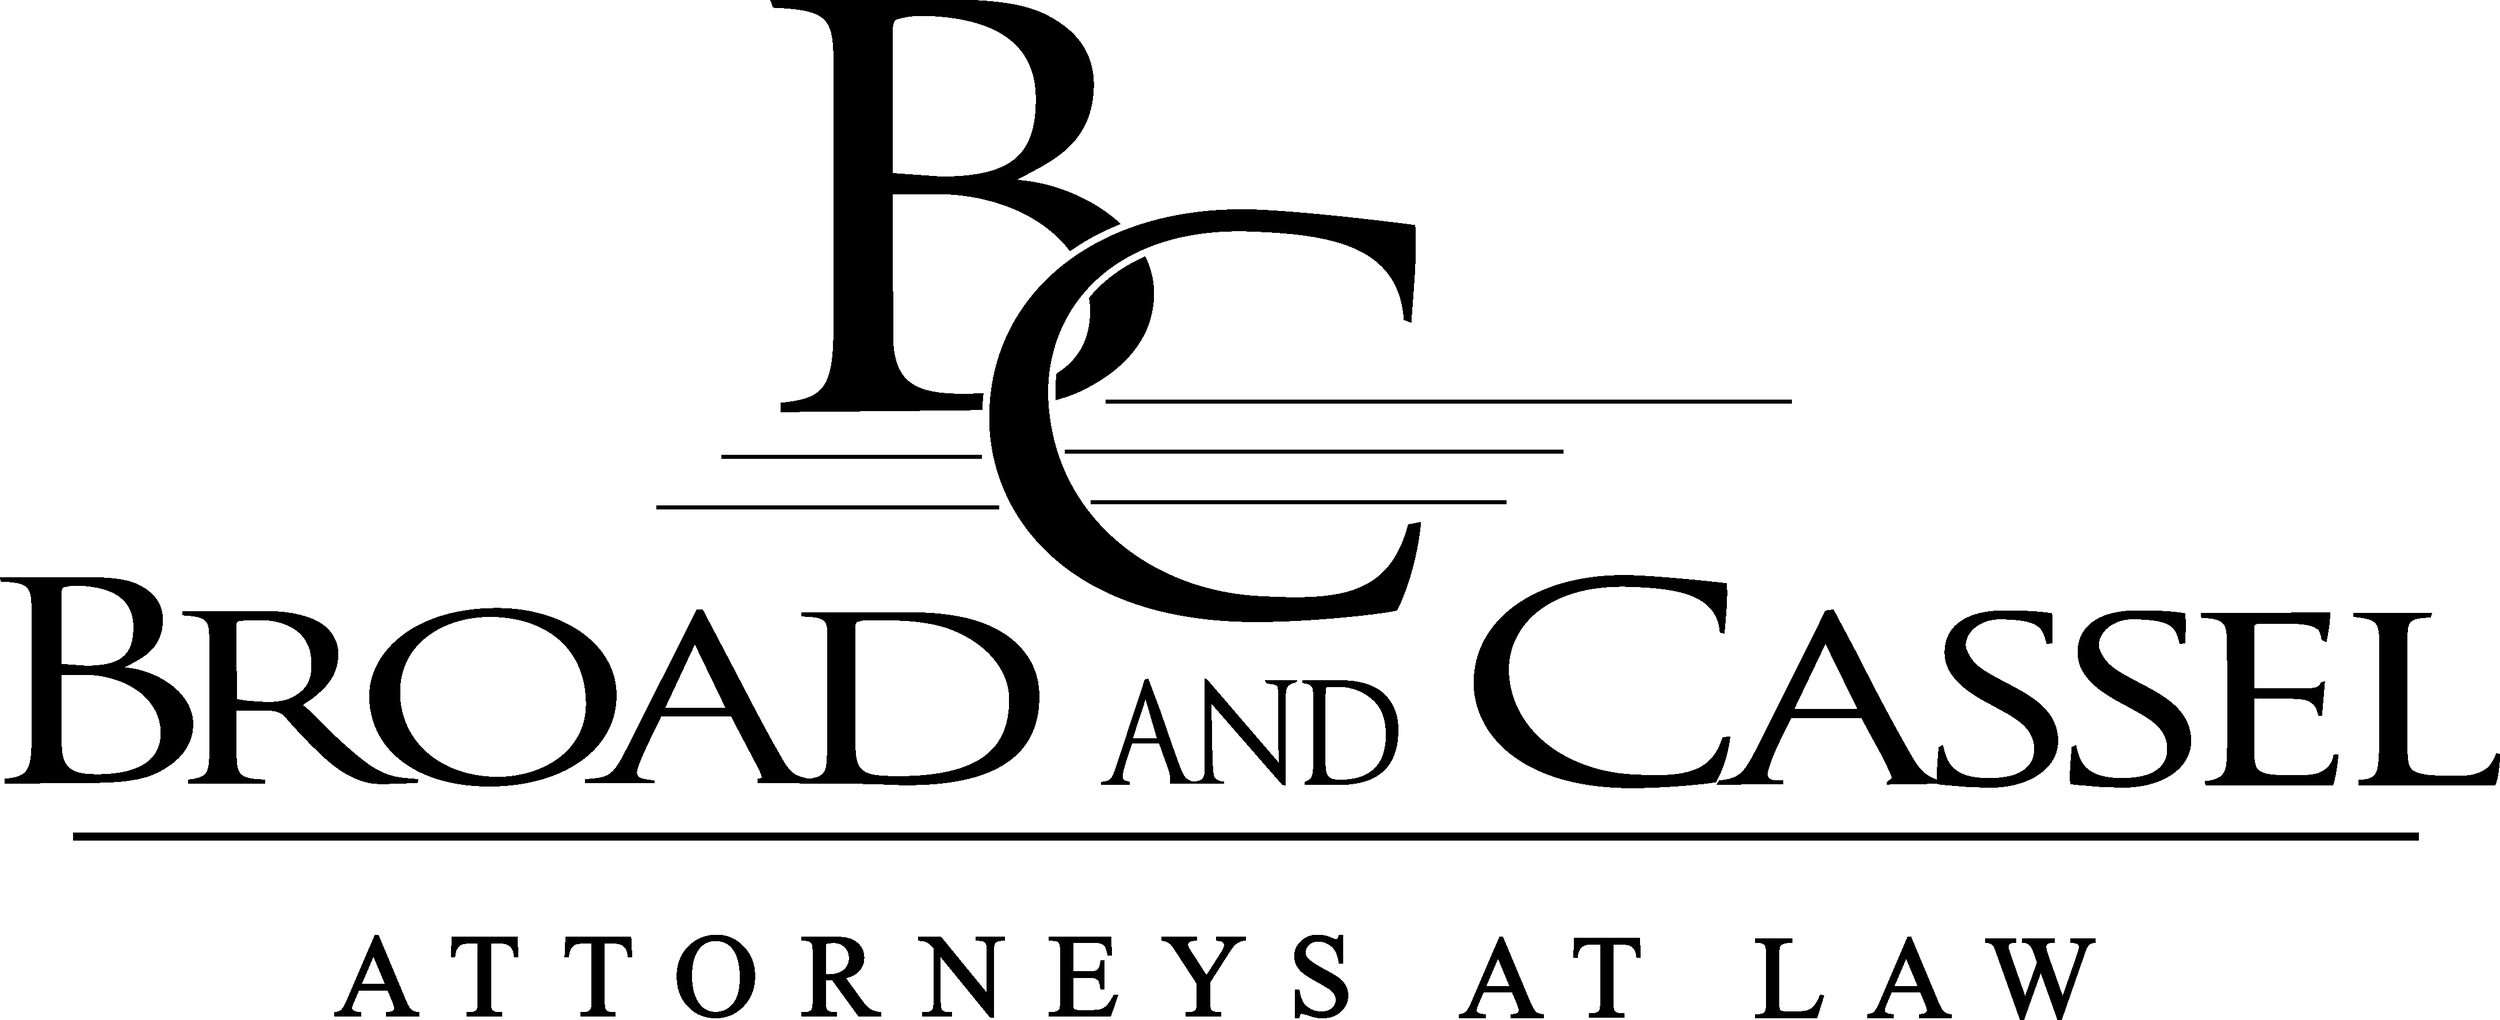 2011 Broad and Cassel Logo.jpg